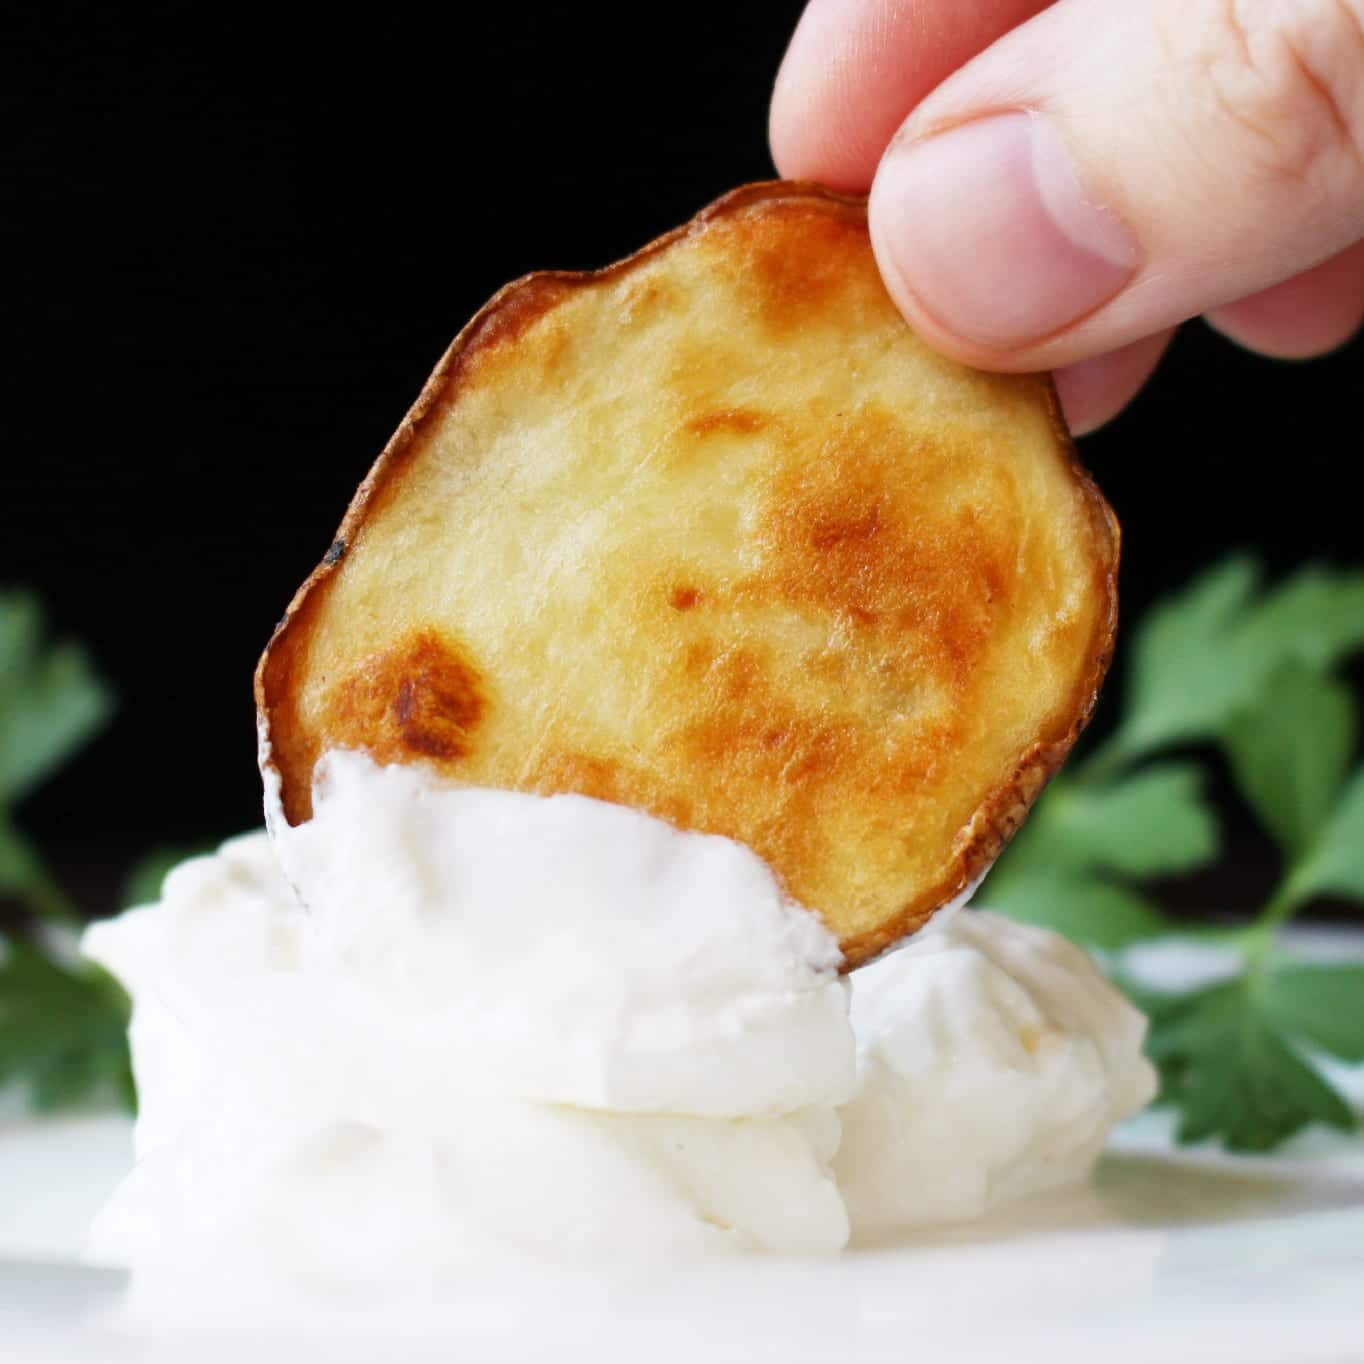 Recipes for Seniors - Oven Baked Potato Rounds